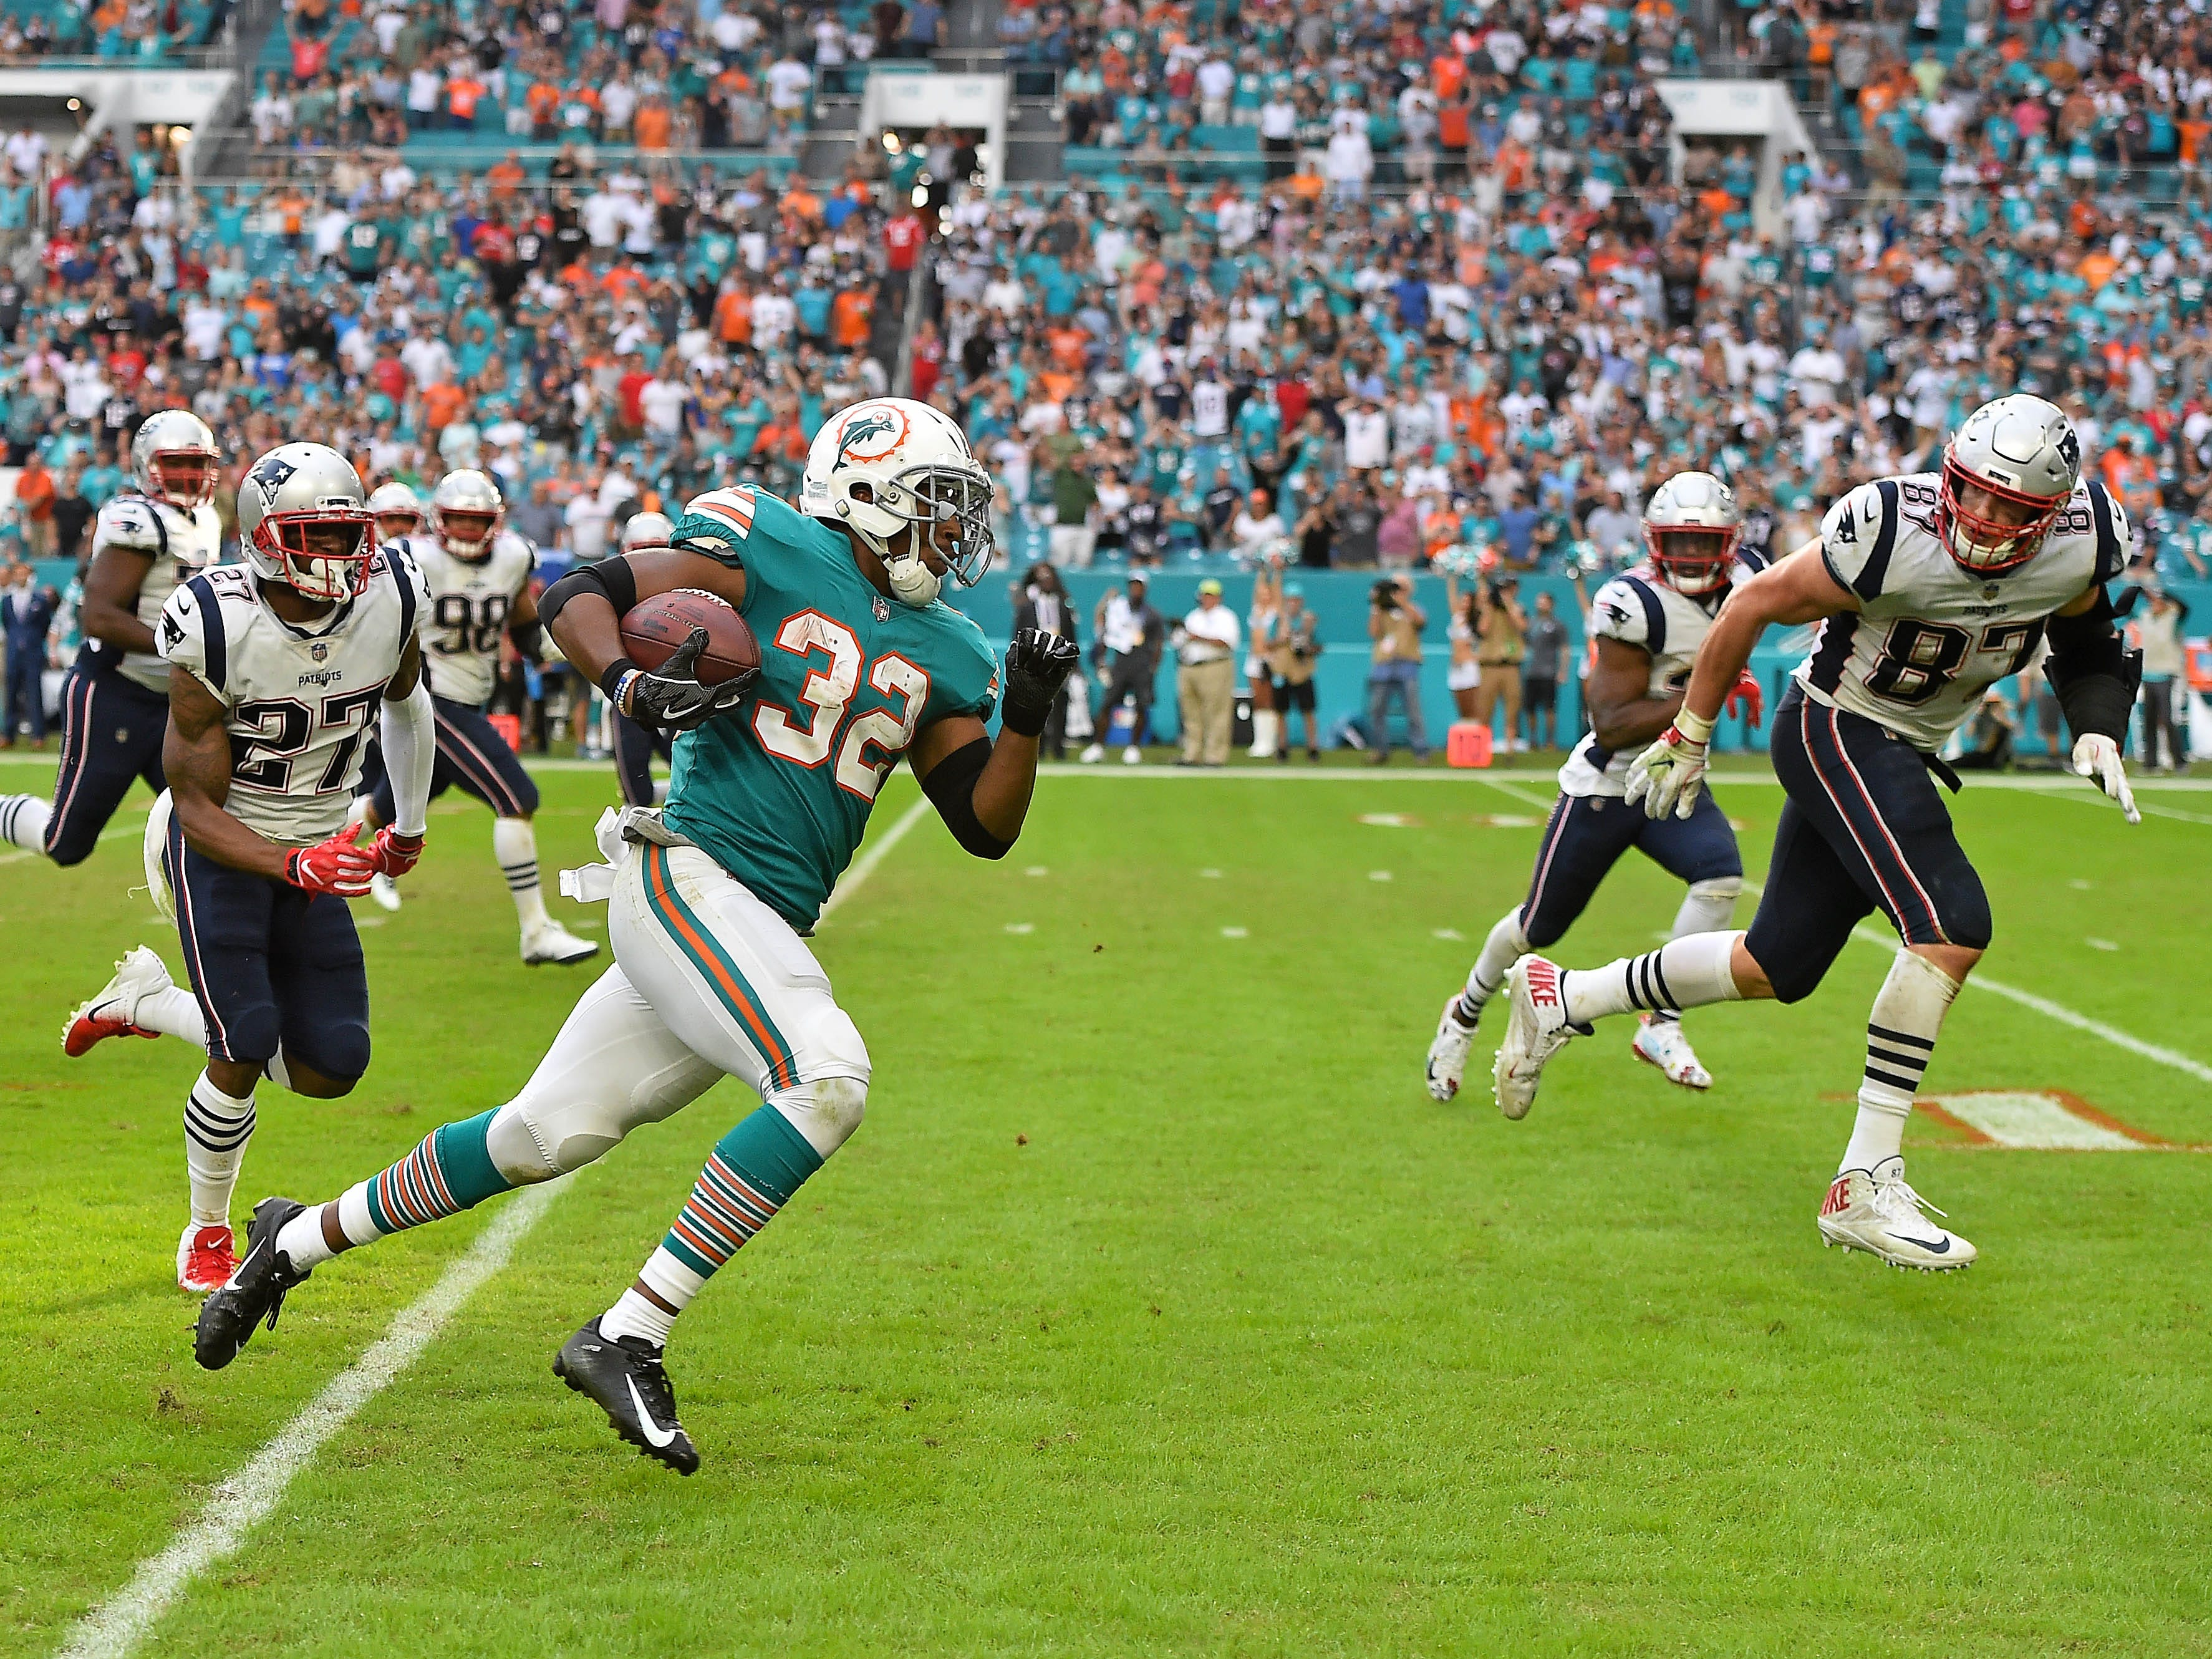 Week 14: Miami Dolphins running back Kenyan Drake runs the ball after a lateral  to score a walk-off touchdown in a 34-33 win over the New England Patriots at Hard Rock Stadium.